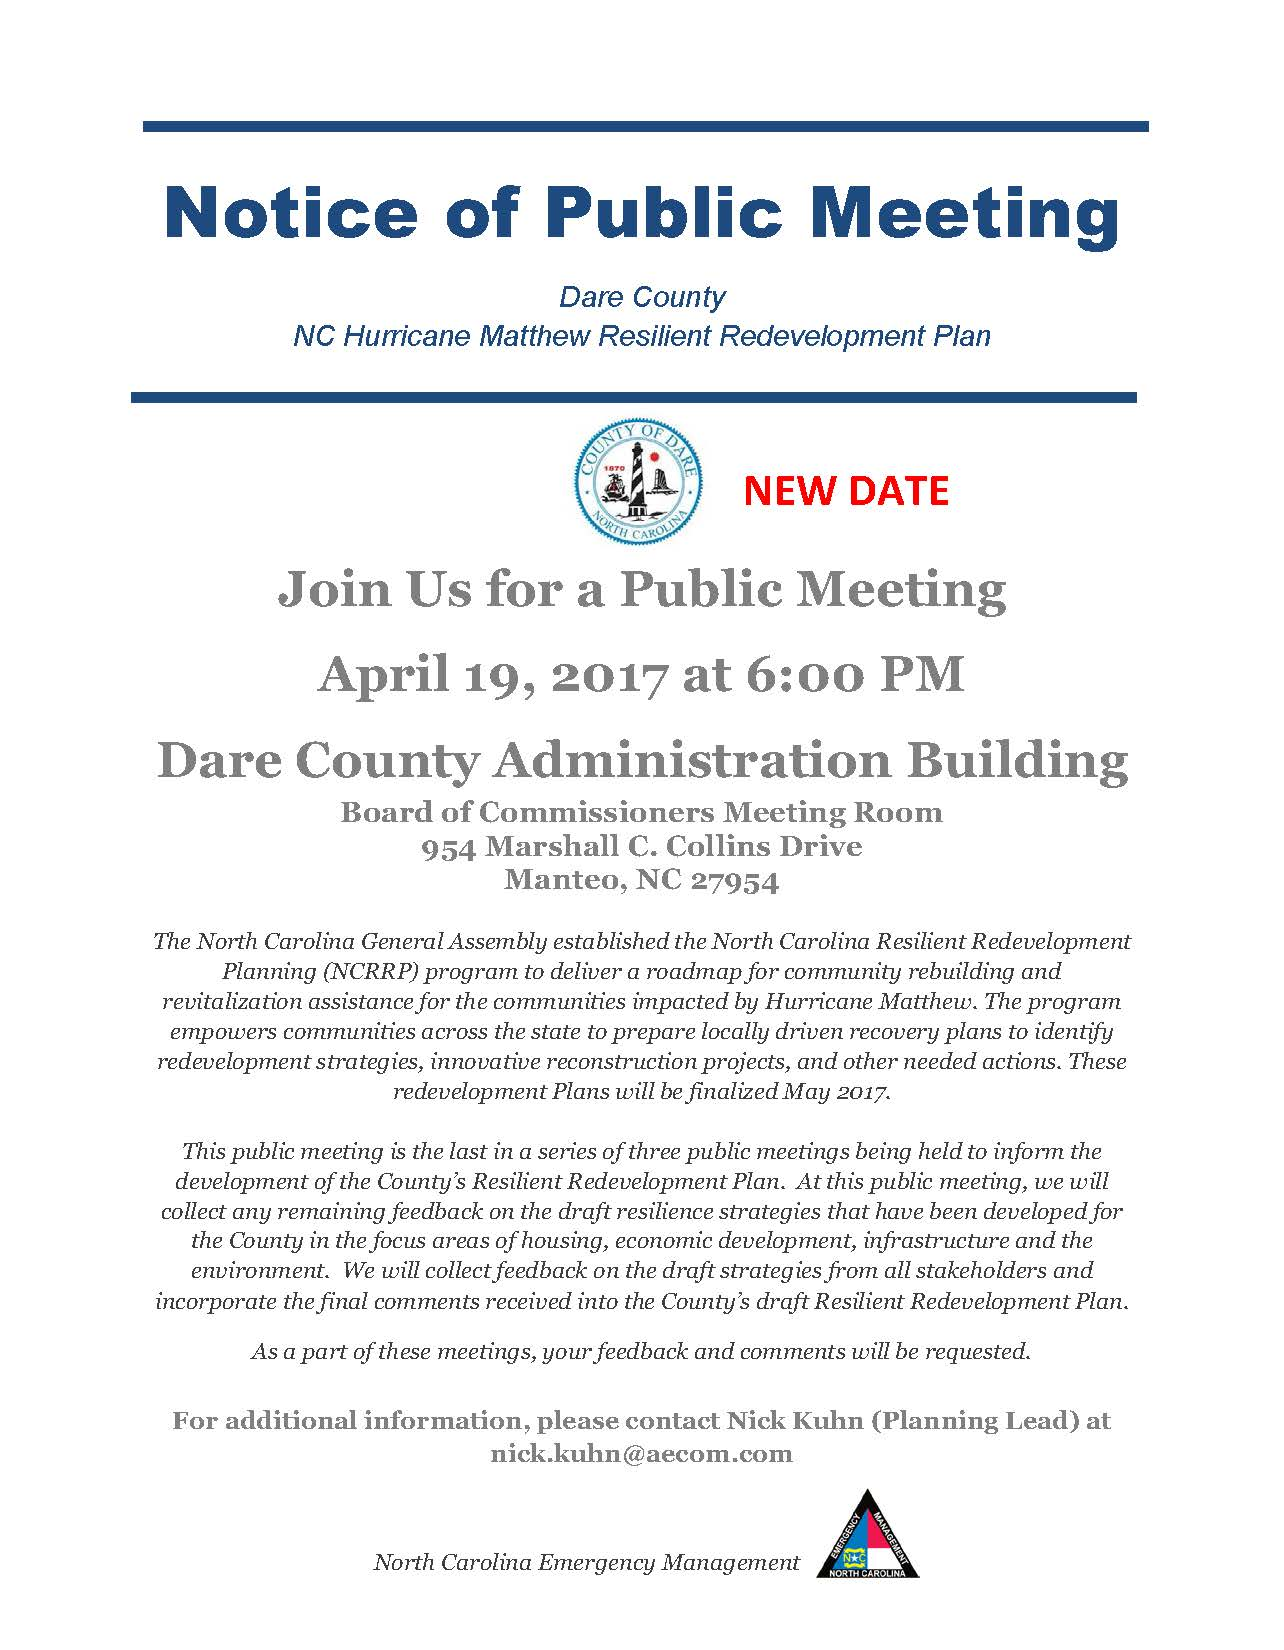 NCRecovery_Meeting3_PublicNotice_DareCounty